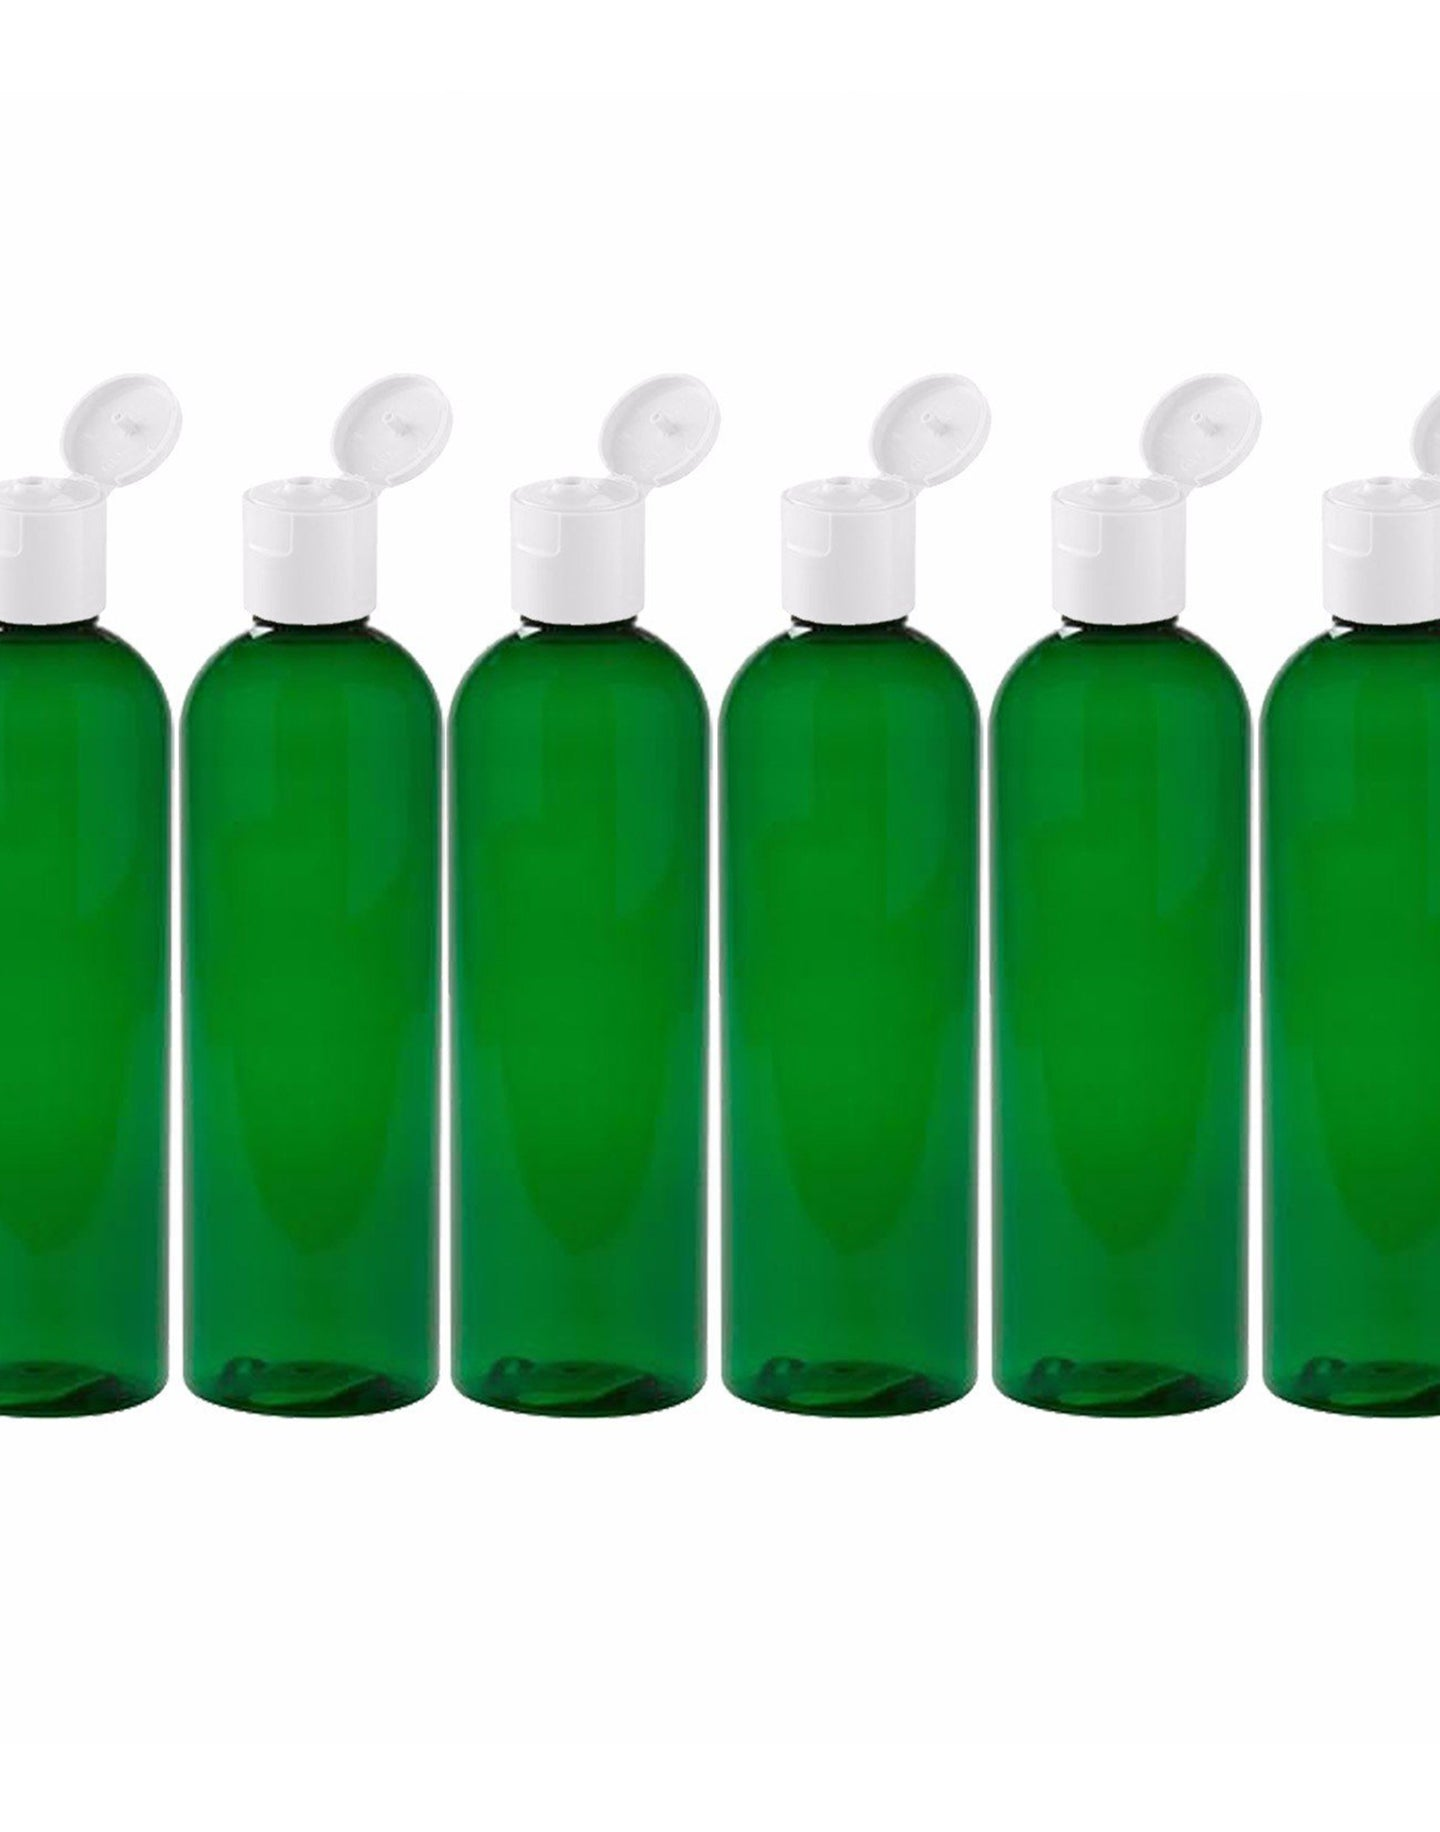 MoYo Natural Labs 8 oz Travel Bottle, Empty Travel Containers with Flip Caps, BPA Free PET Plastic Squeezable Toiletry/Cosmetic Bottle (6 pack, Forest Green)